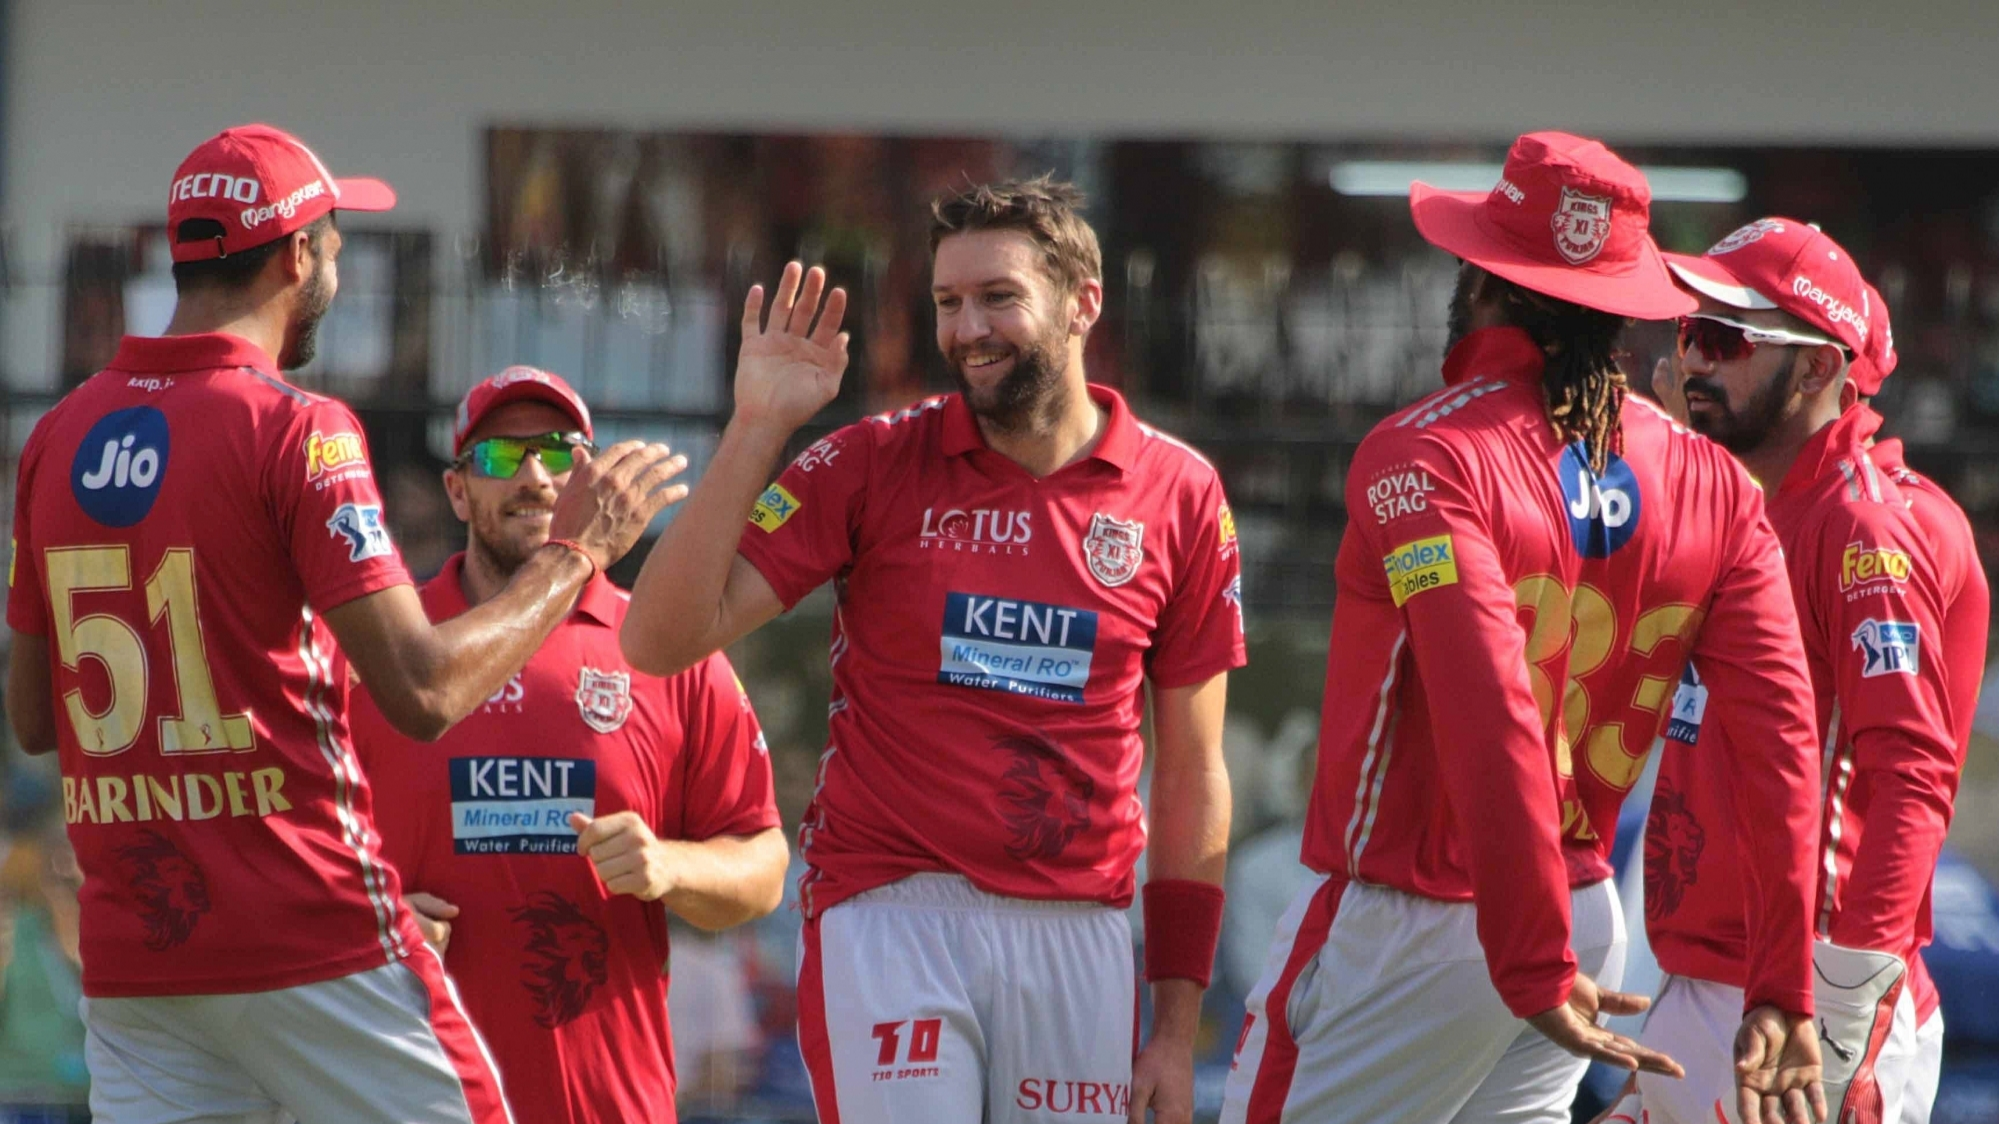 IPL 2018: Kings XI Punjab needs their matchwinners to step-up, says Andrew Tye